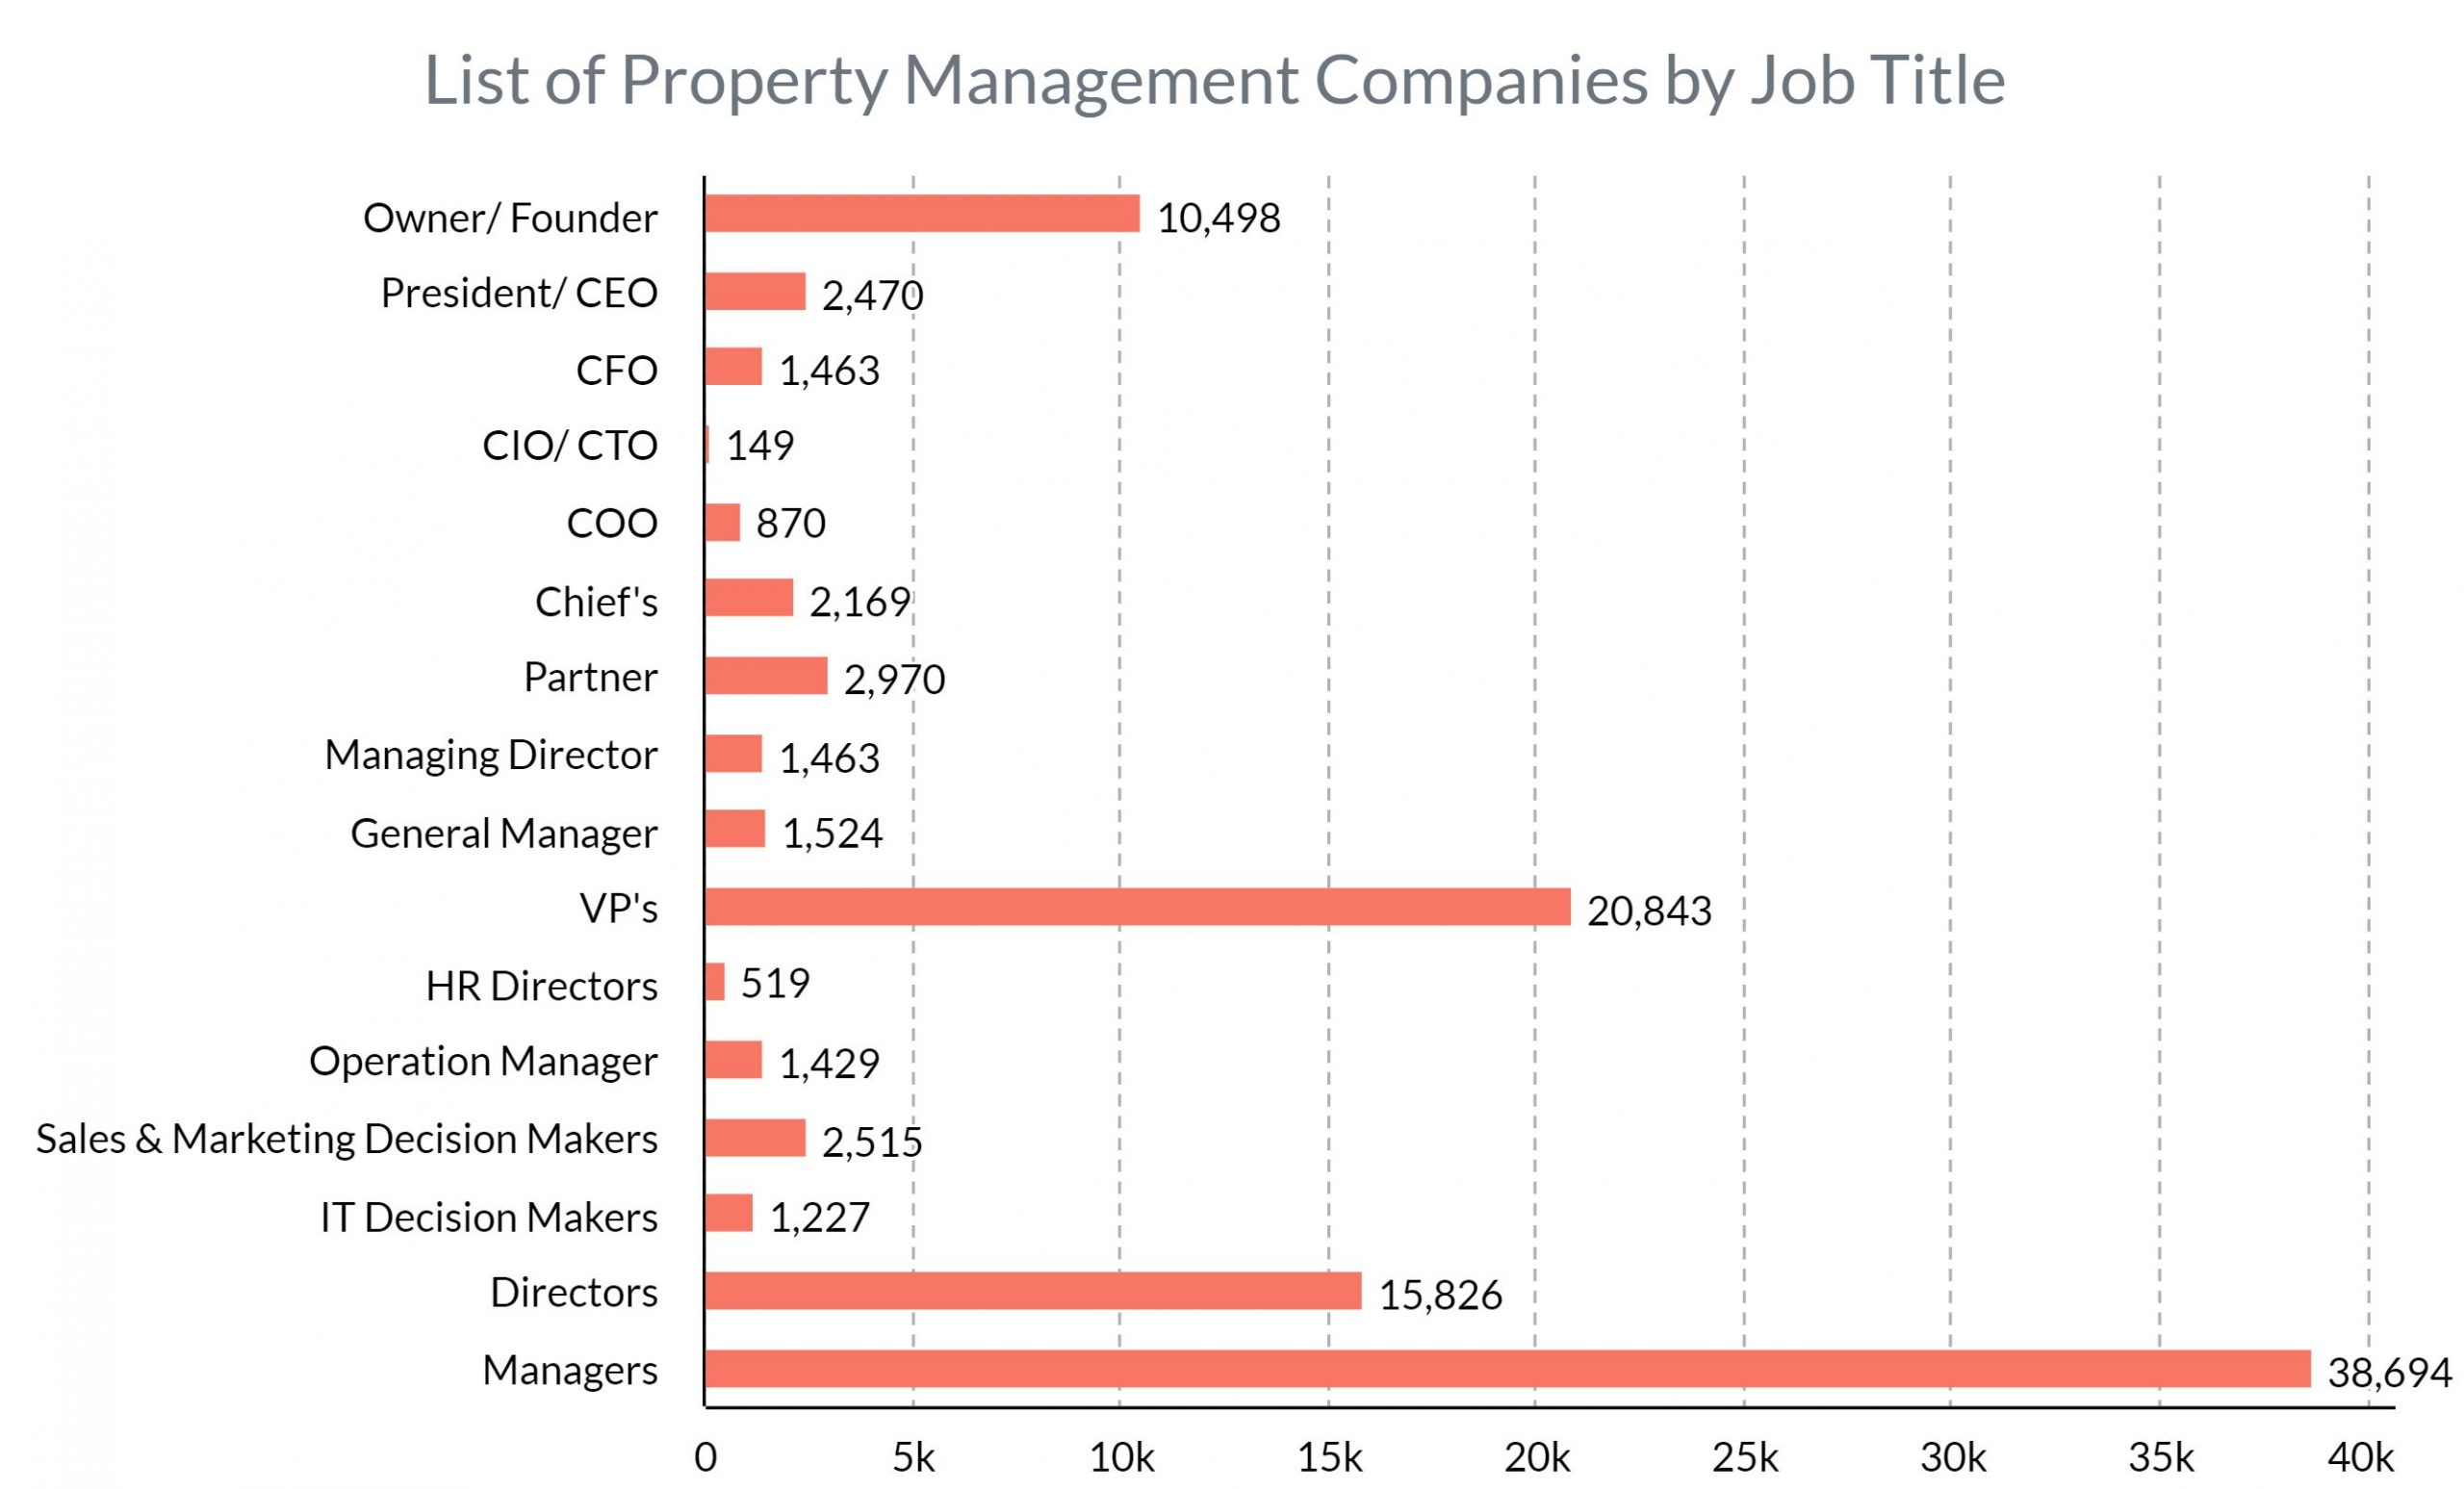 List of Property Management Companies by Job title